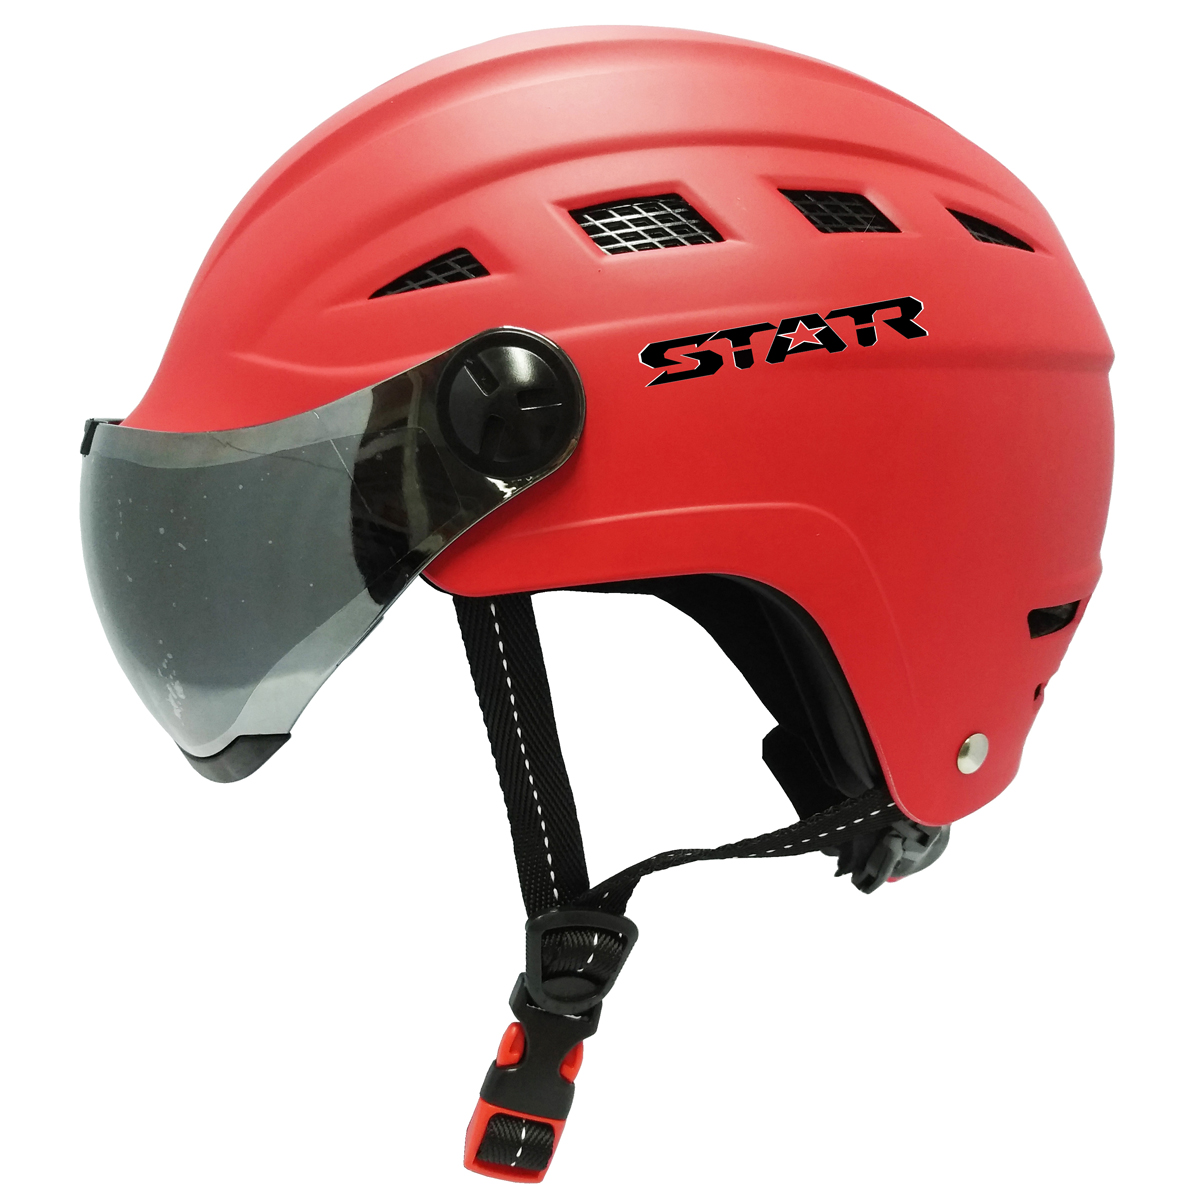 E1-16G E-Bike Helmet